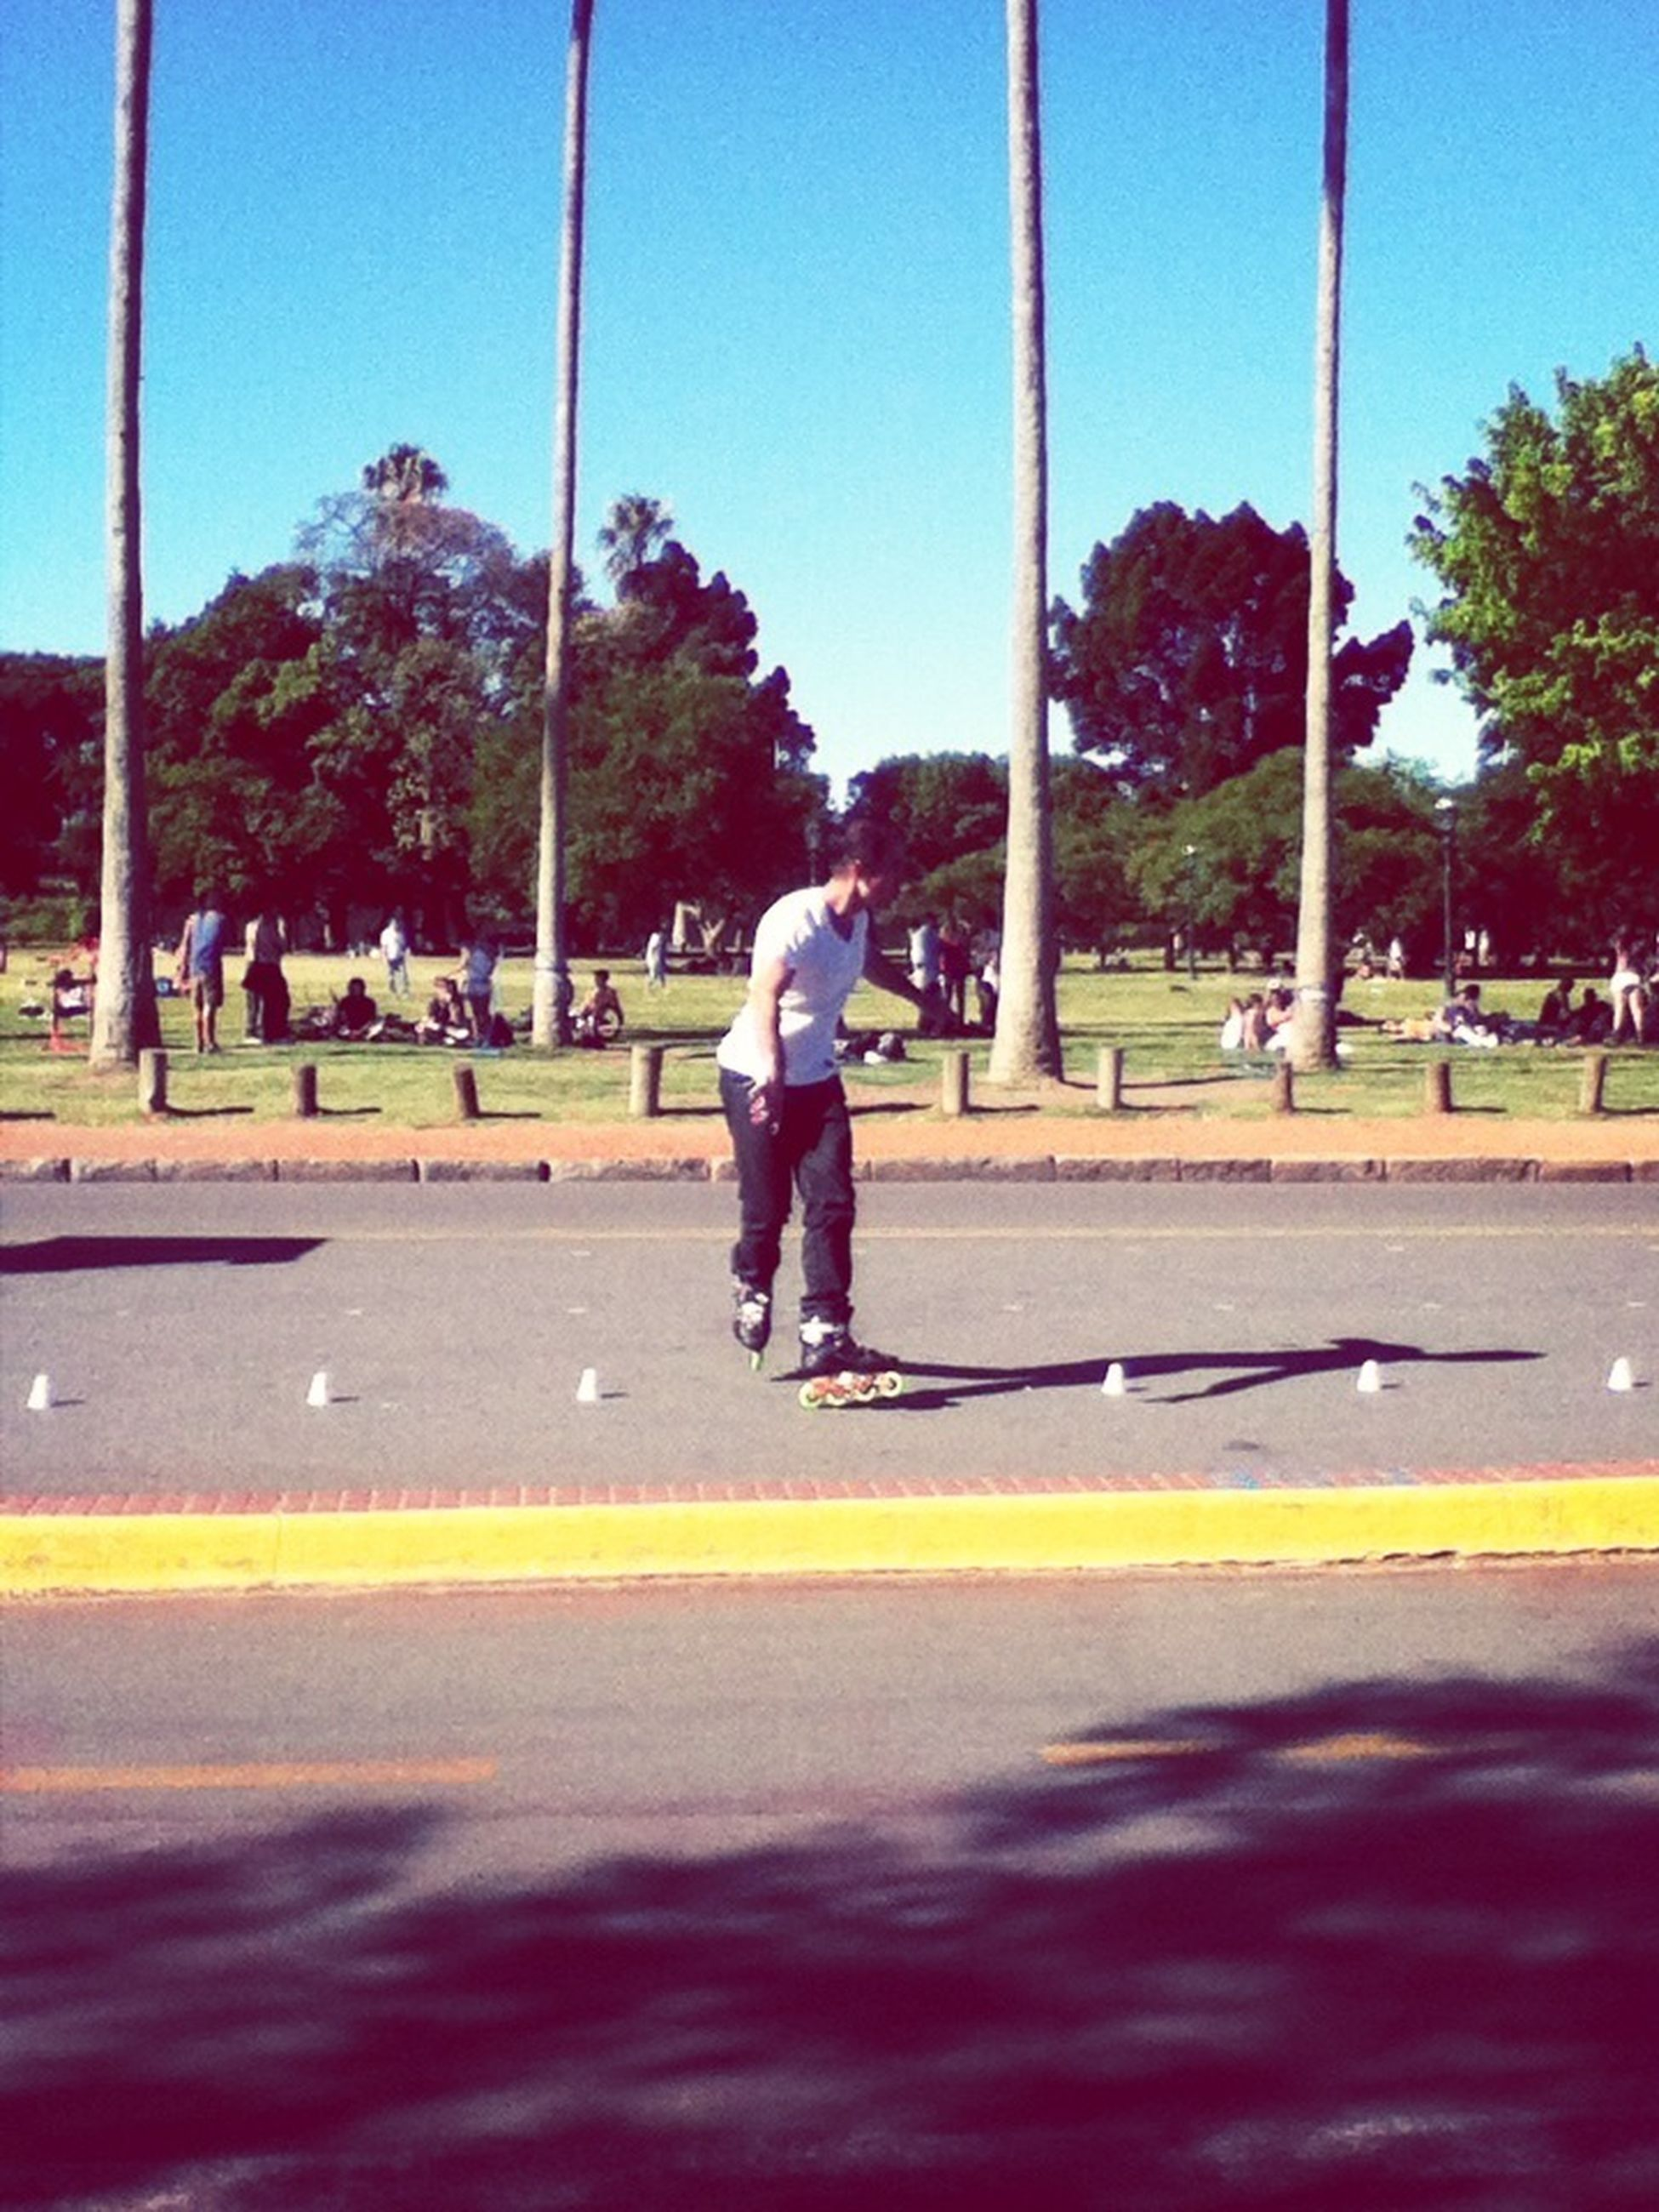 full length, lifestyles, tree, leisure activity, street, walking, road, rear view, childhood, casual clothing, park - man made space, girls, boys, person, clear sky, men, shadow, day